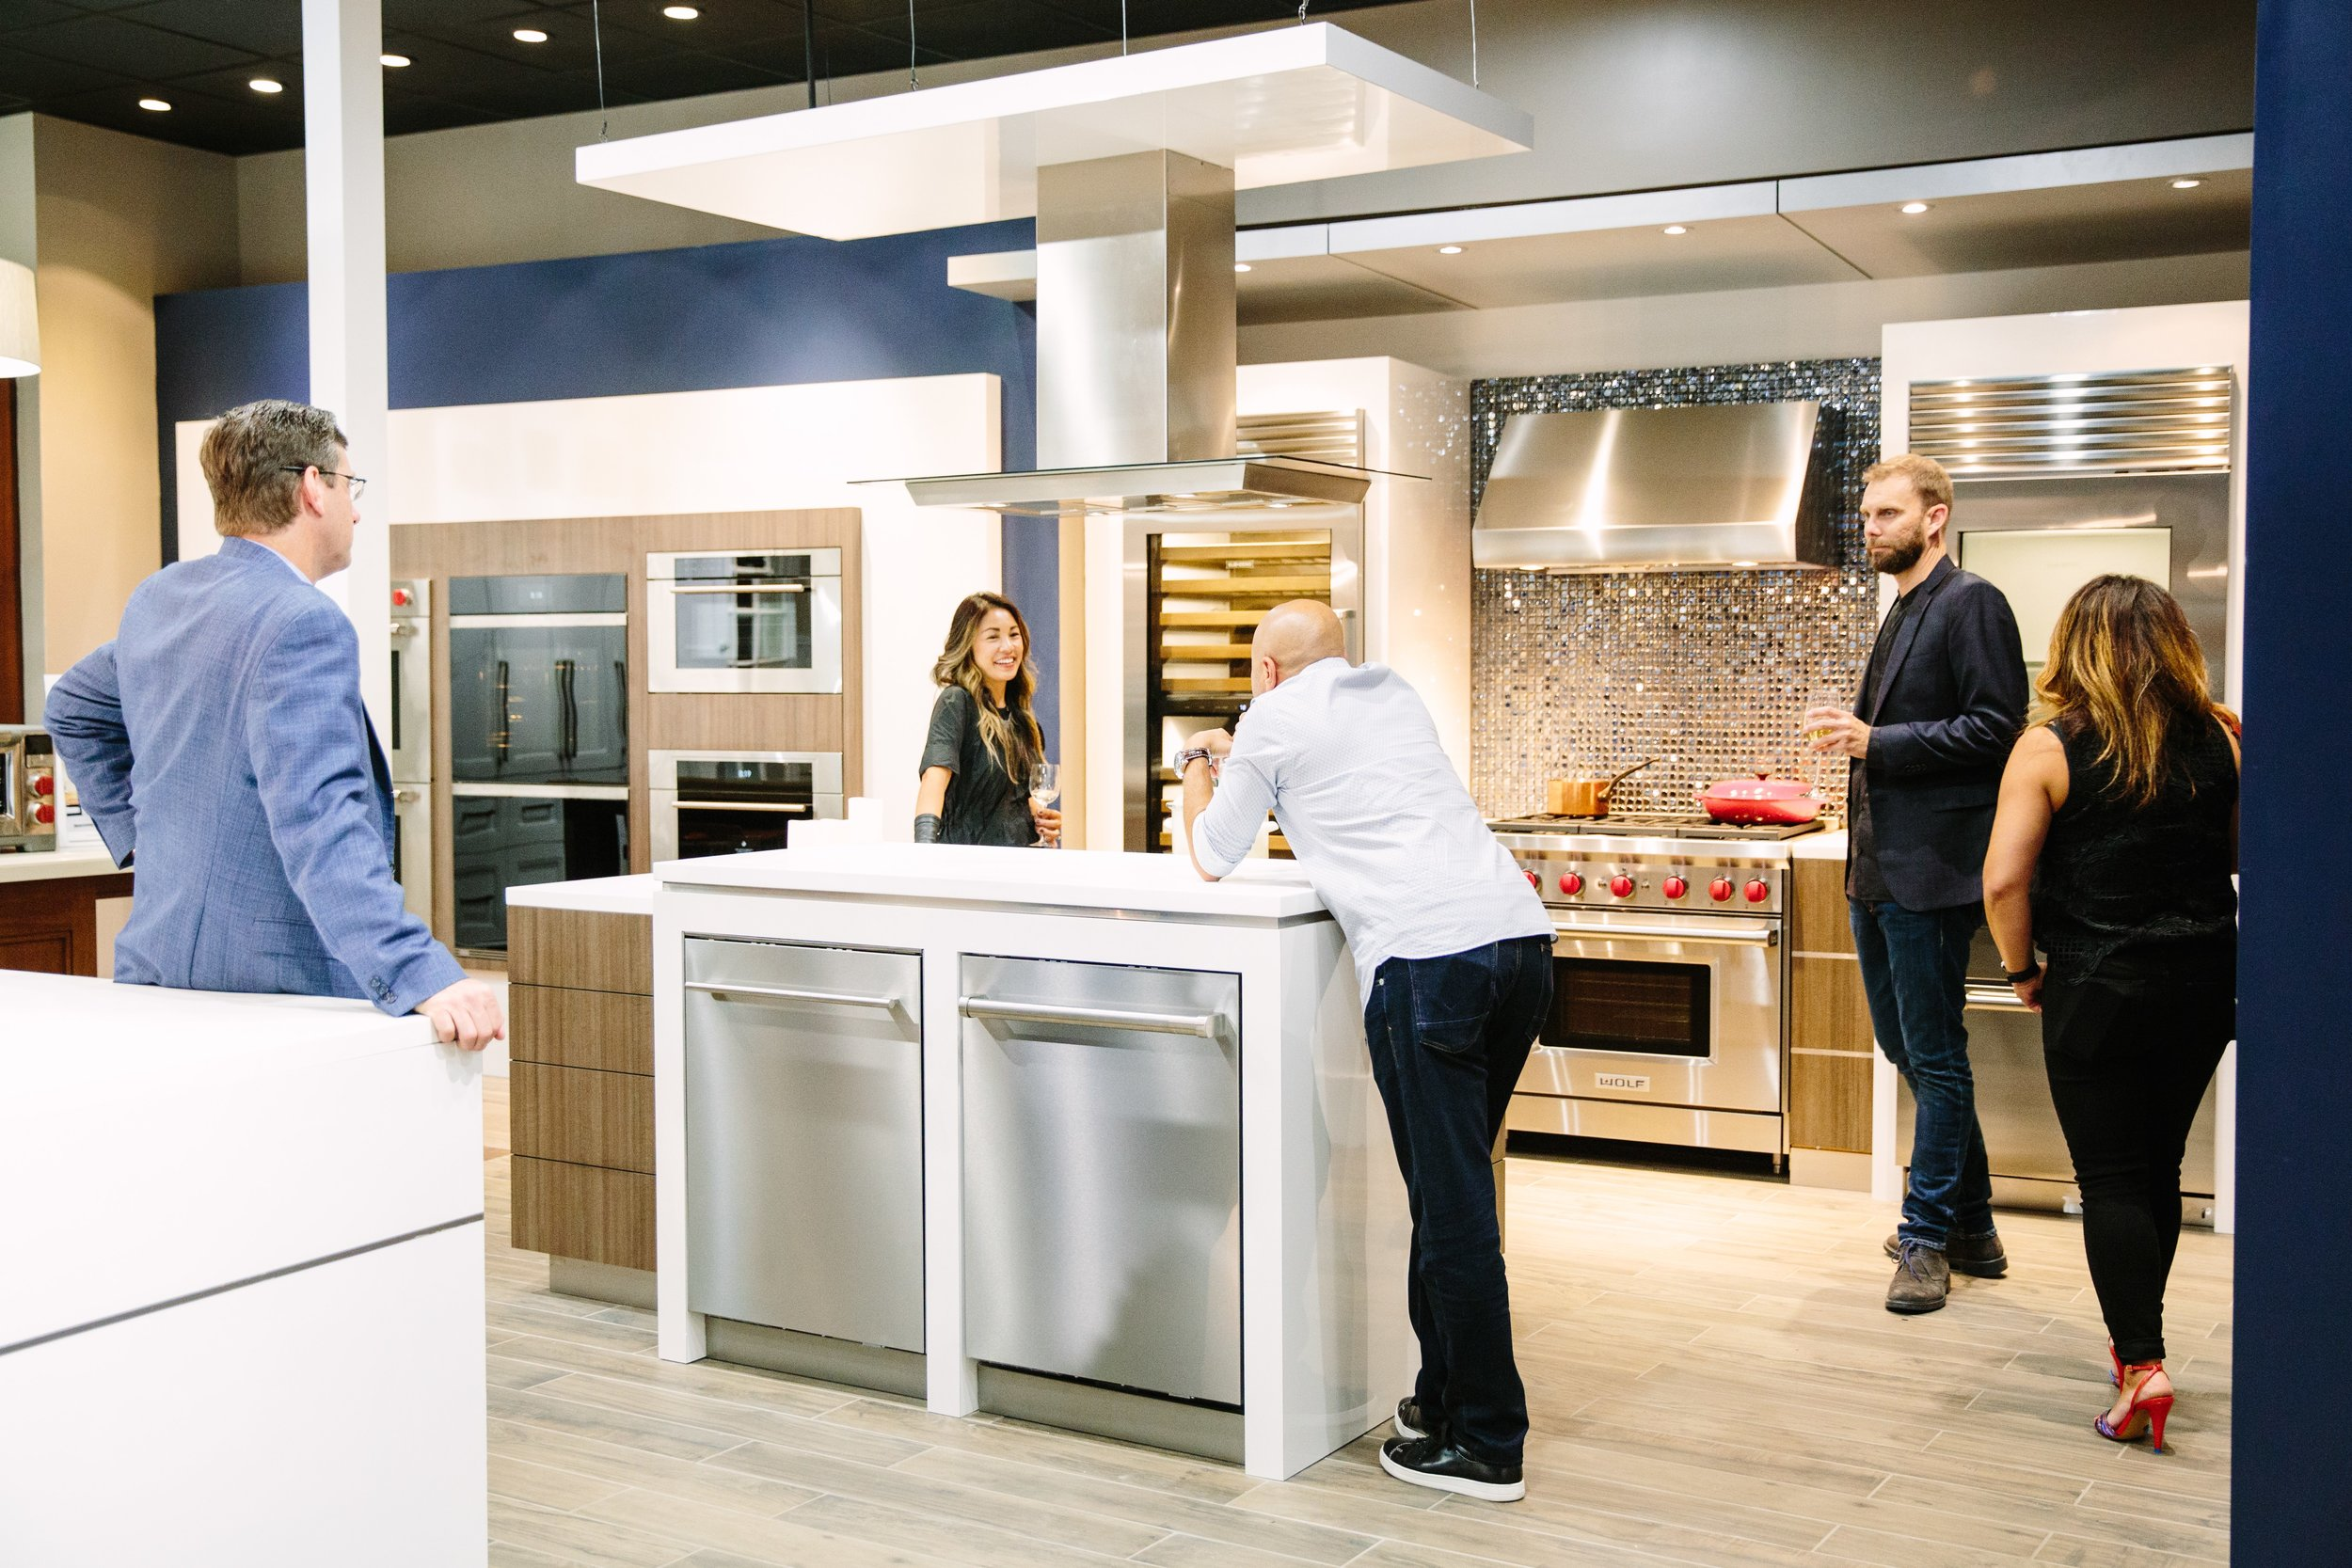 The new Living Kitchen, created in collaboration with Sub-Zero Wolf